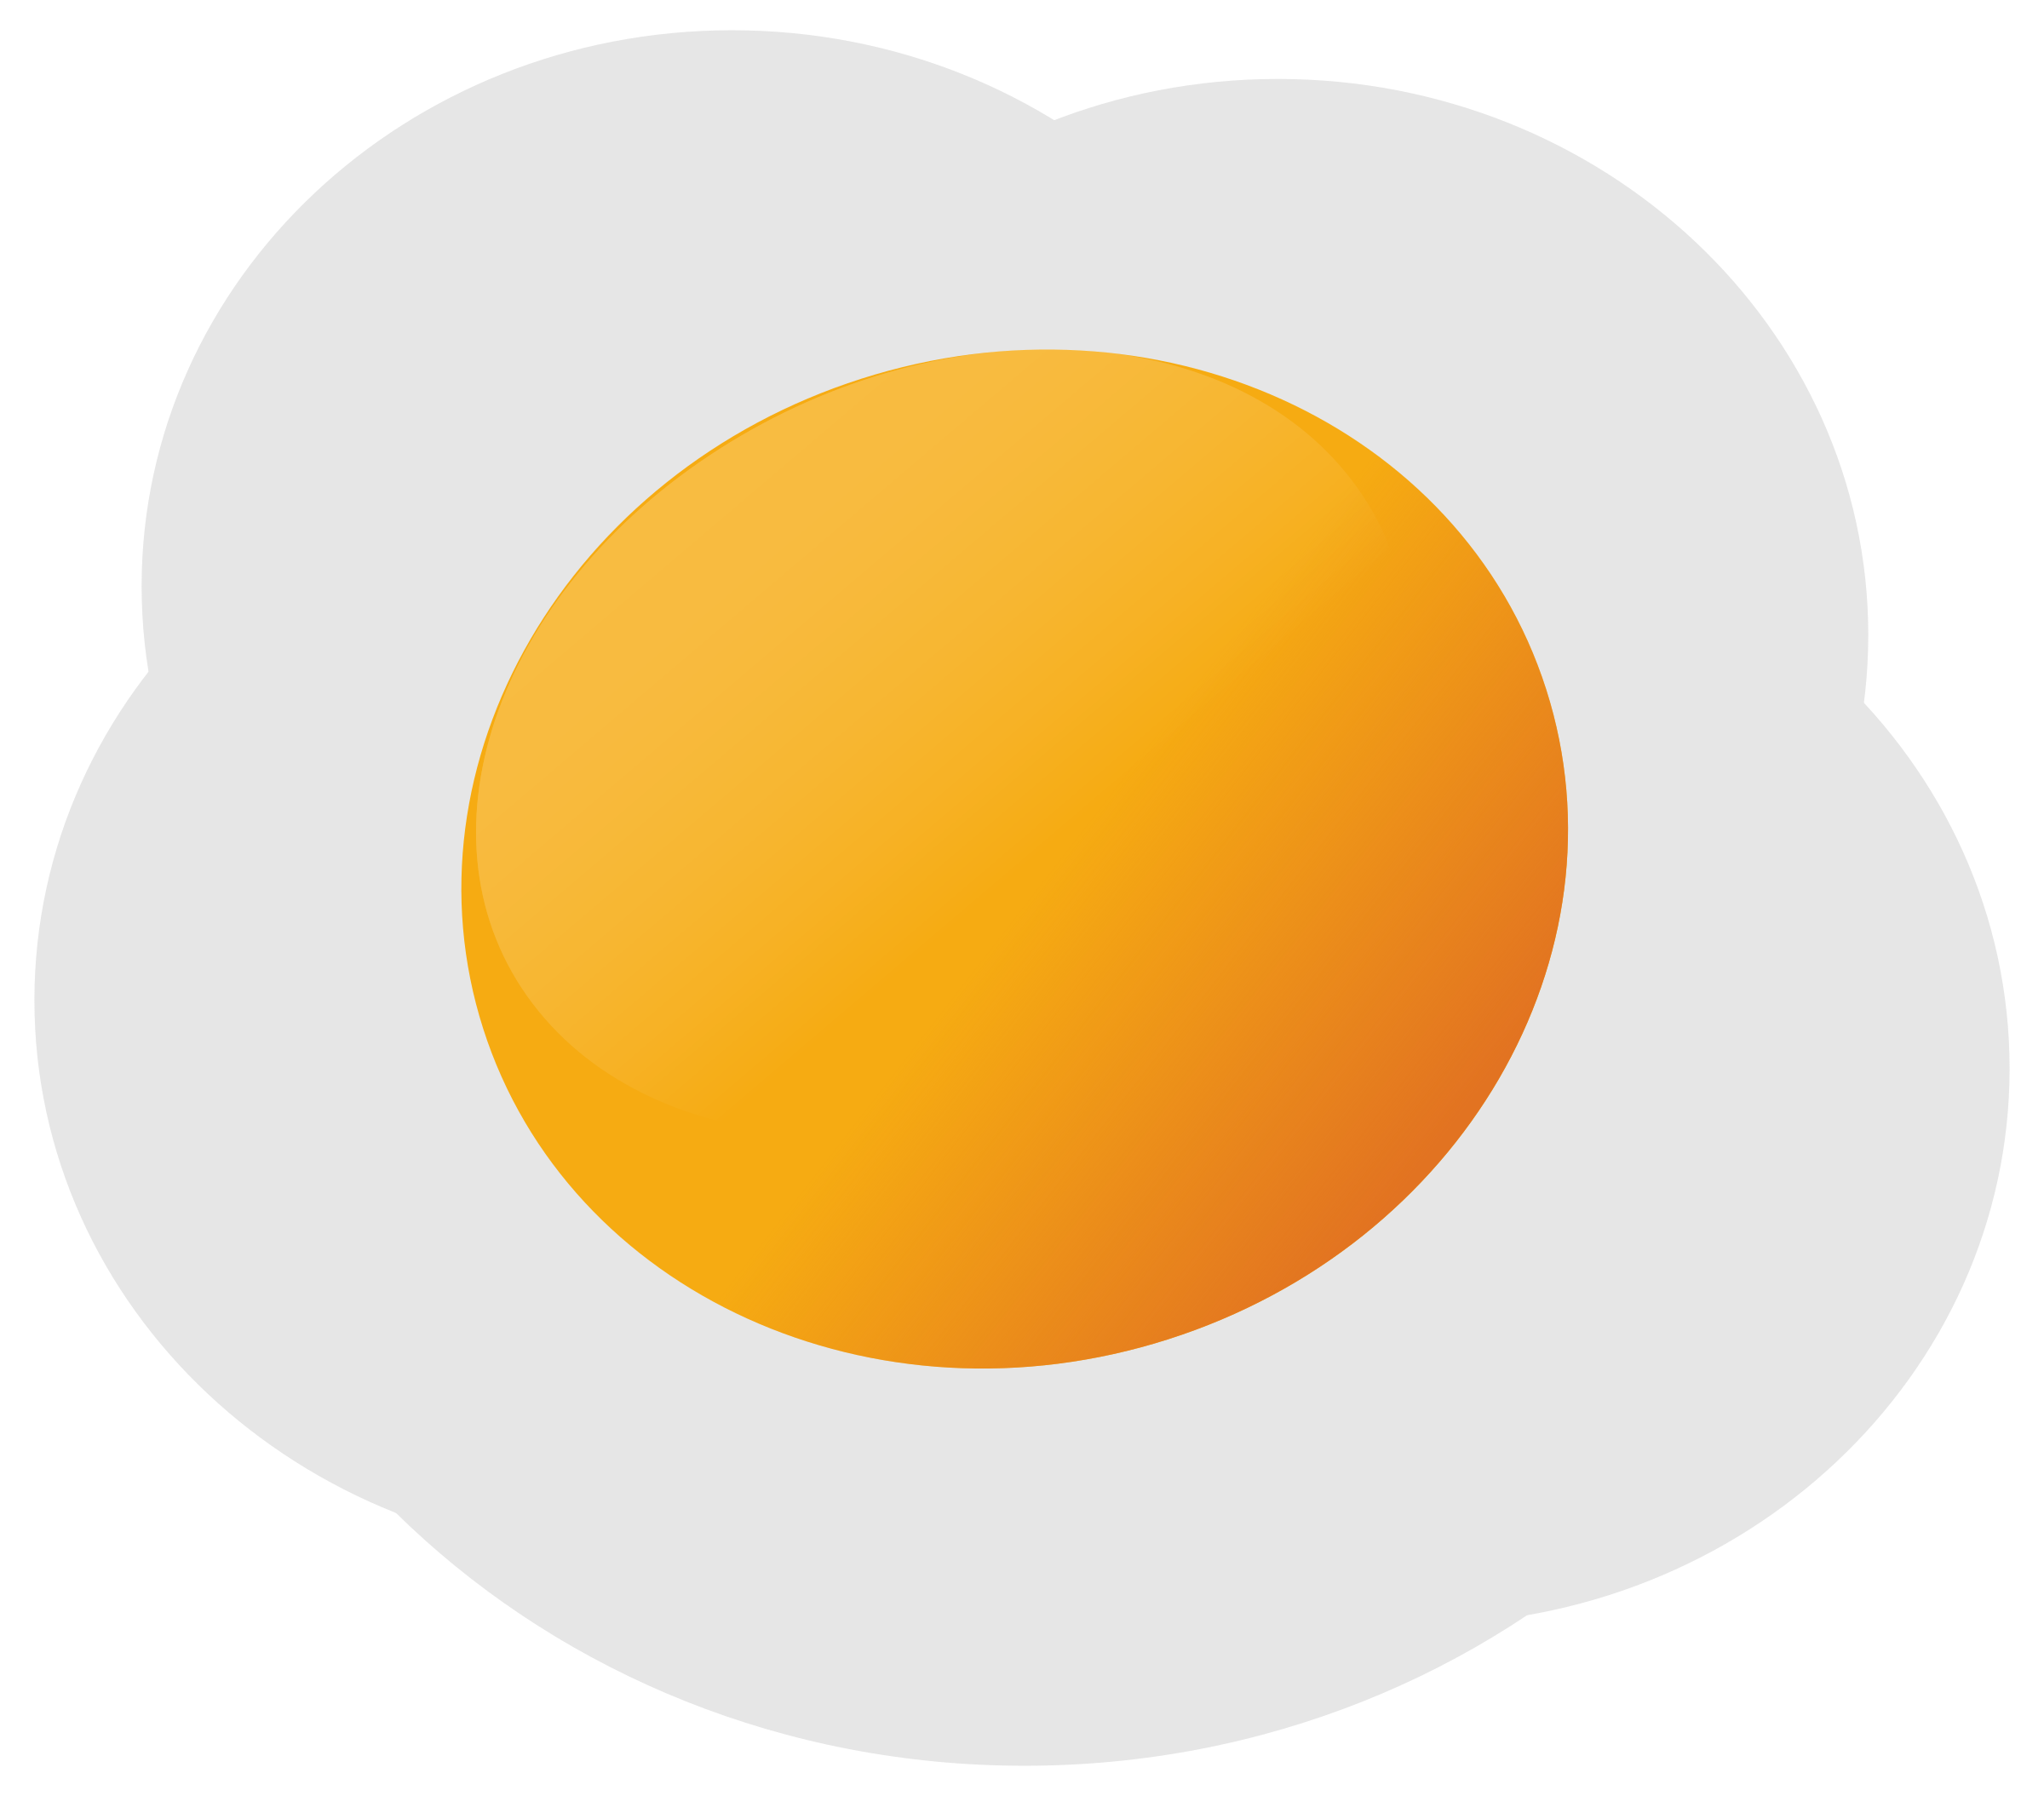 Fried Egg Vector Clipart image.